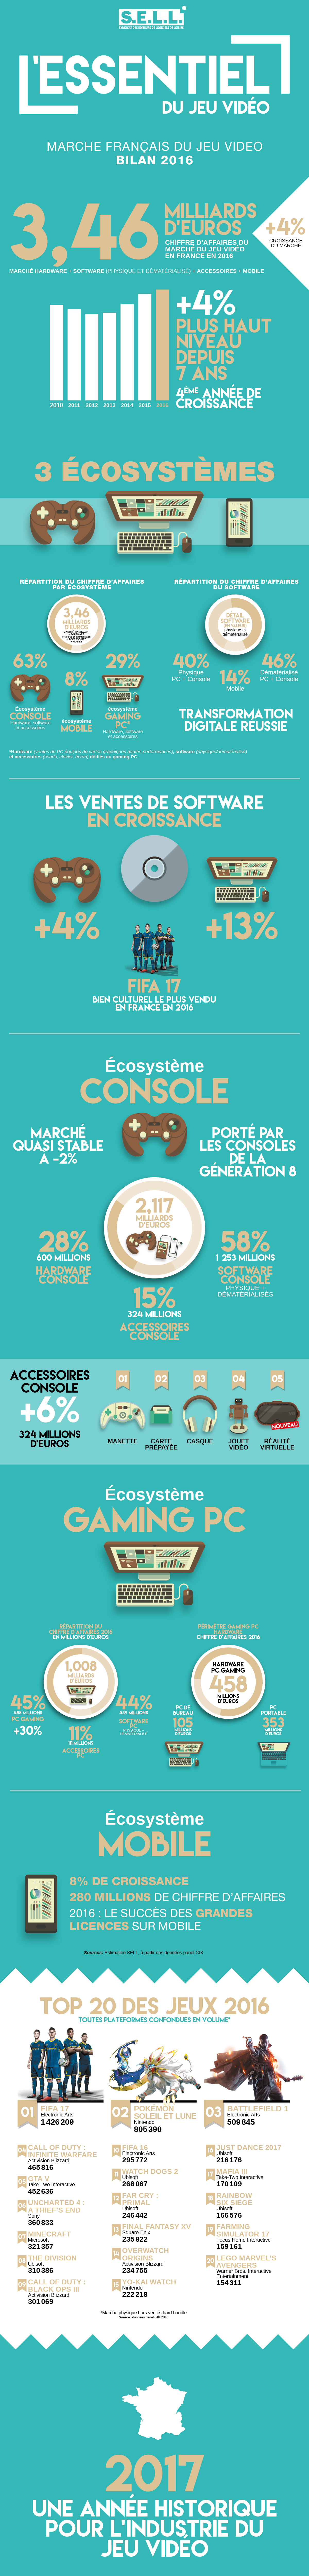 Infographie Bilan marche 2016 SELL FEV17.